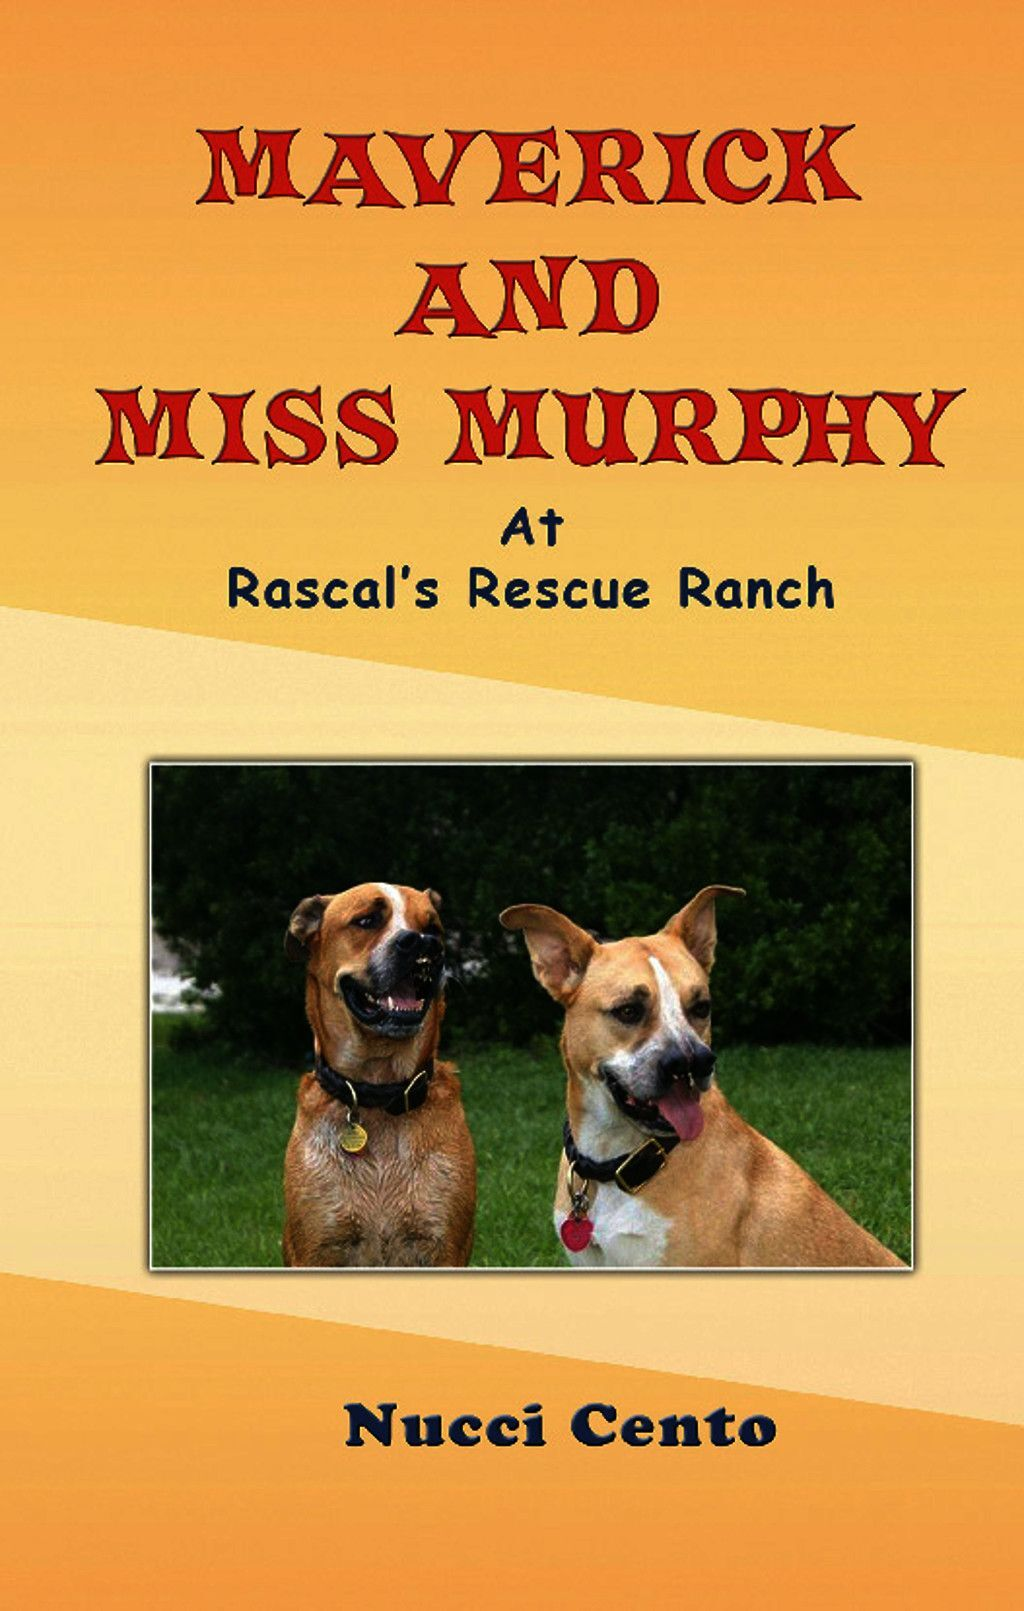 Maverick And Miss Murphy At Rascal''s Rescue Ranch